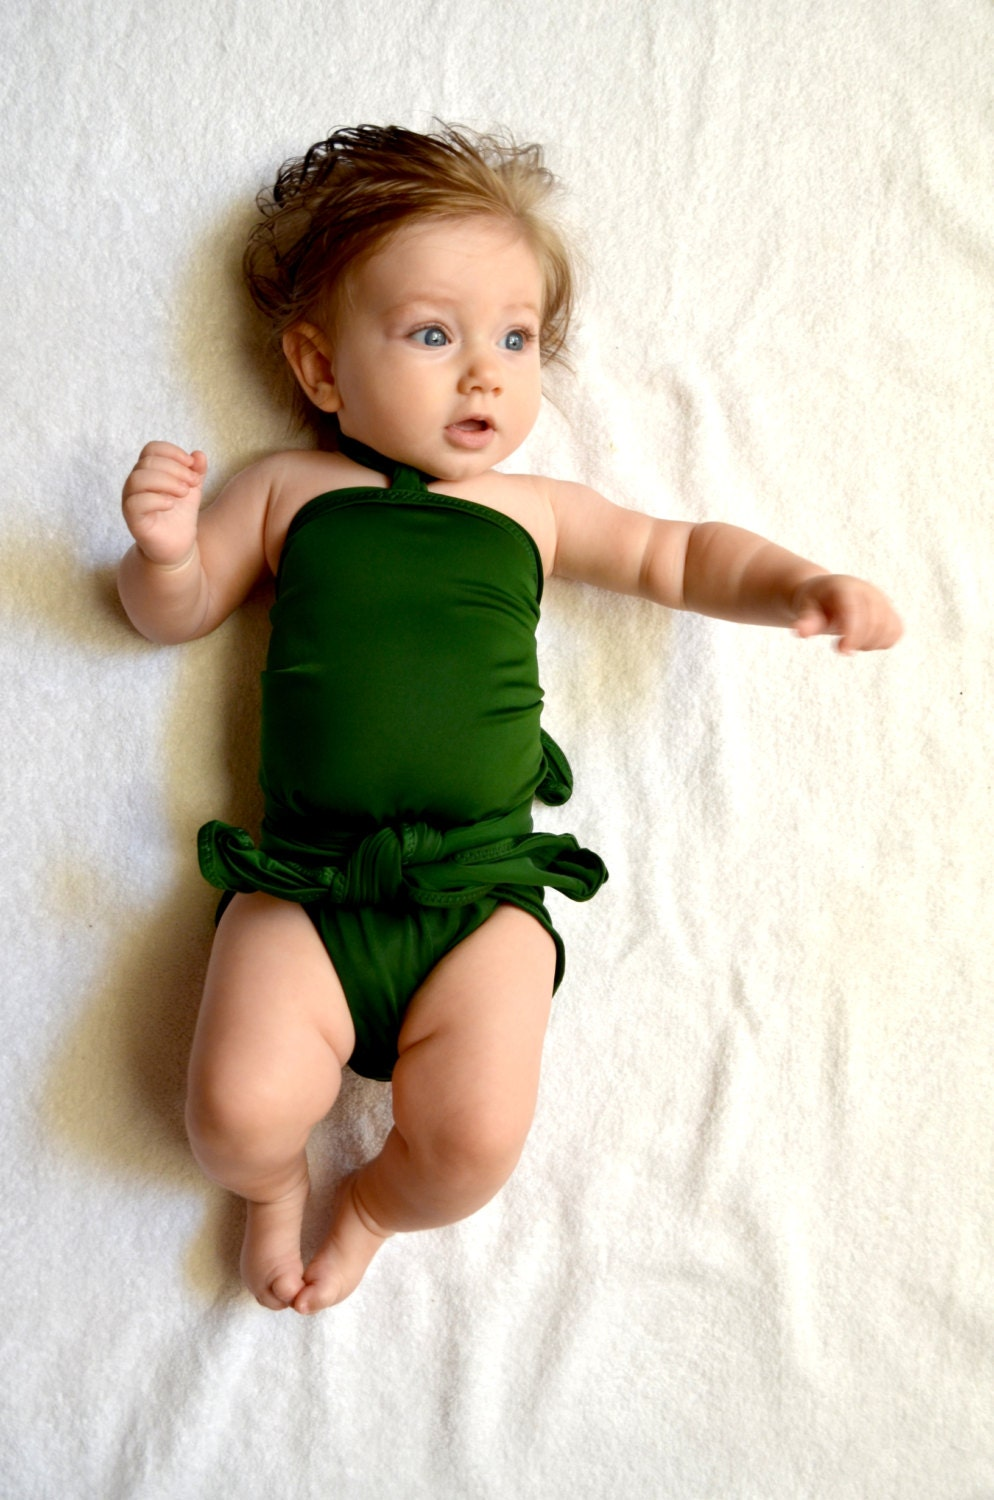 Baby Swimwear. Treat your water baby to our collection of gorgeous swimwear. For the smallest swimmers, choose our swim diapers to keep accidents contained at the pool or beach without the need for another diaper underneath.